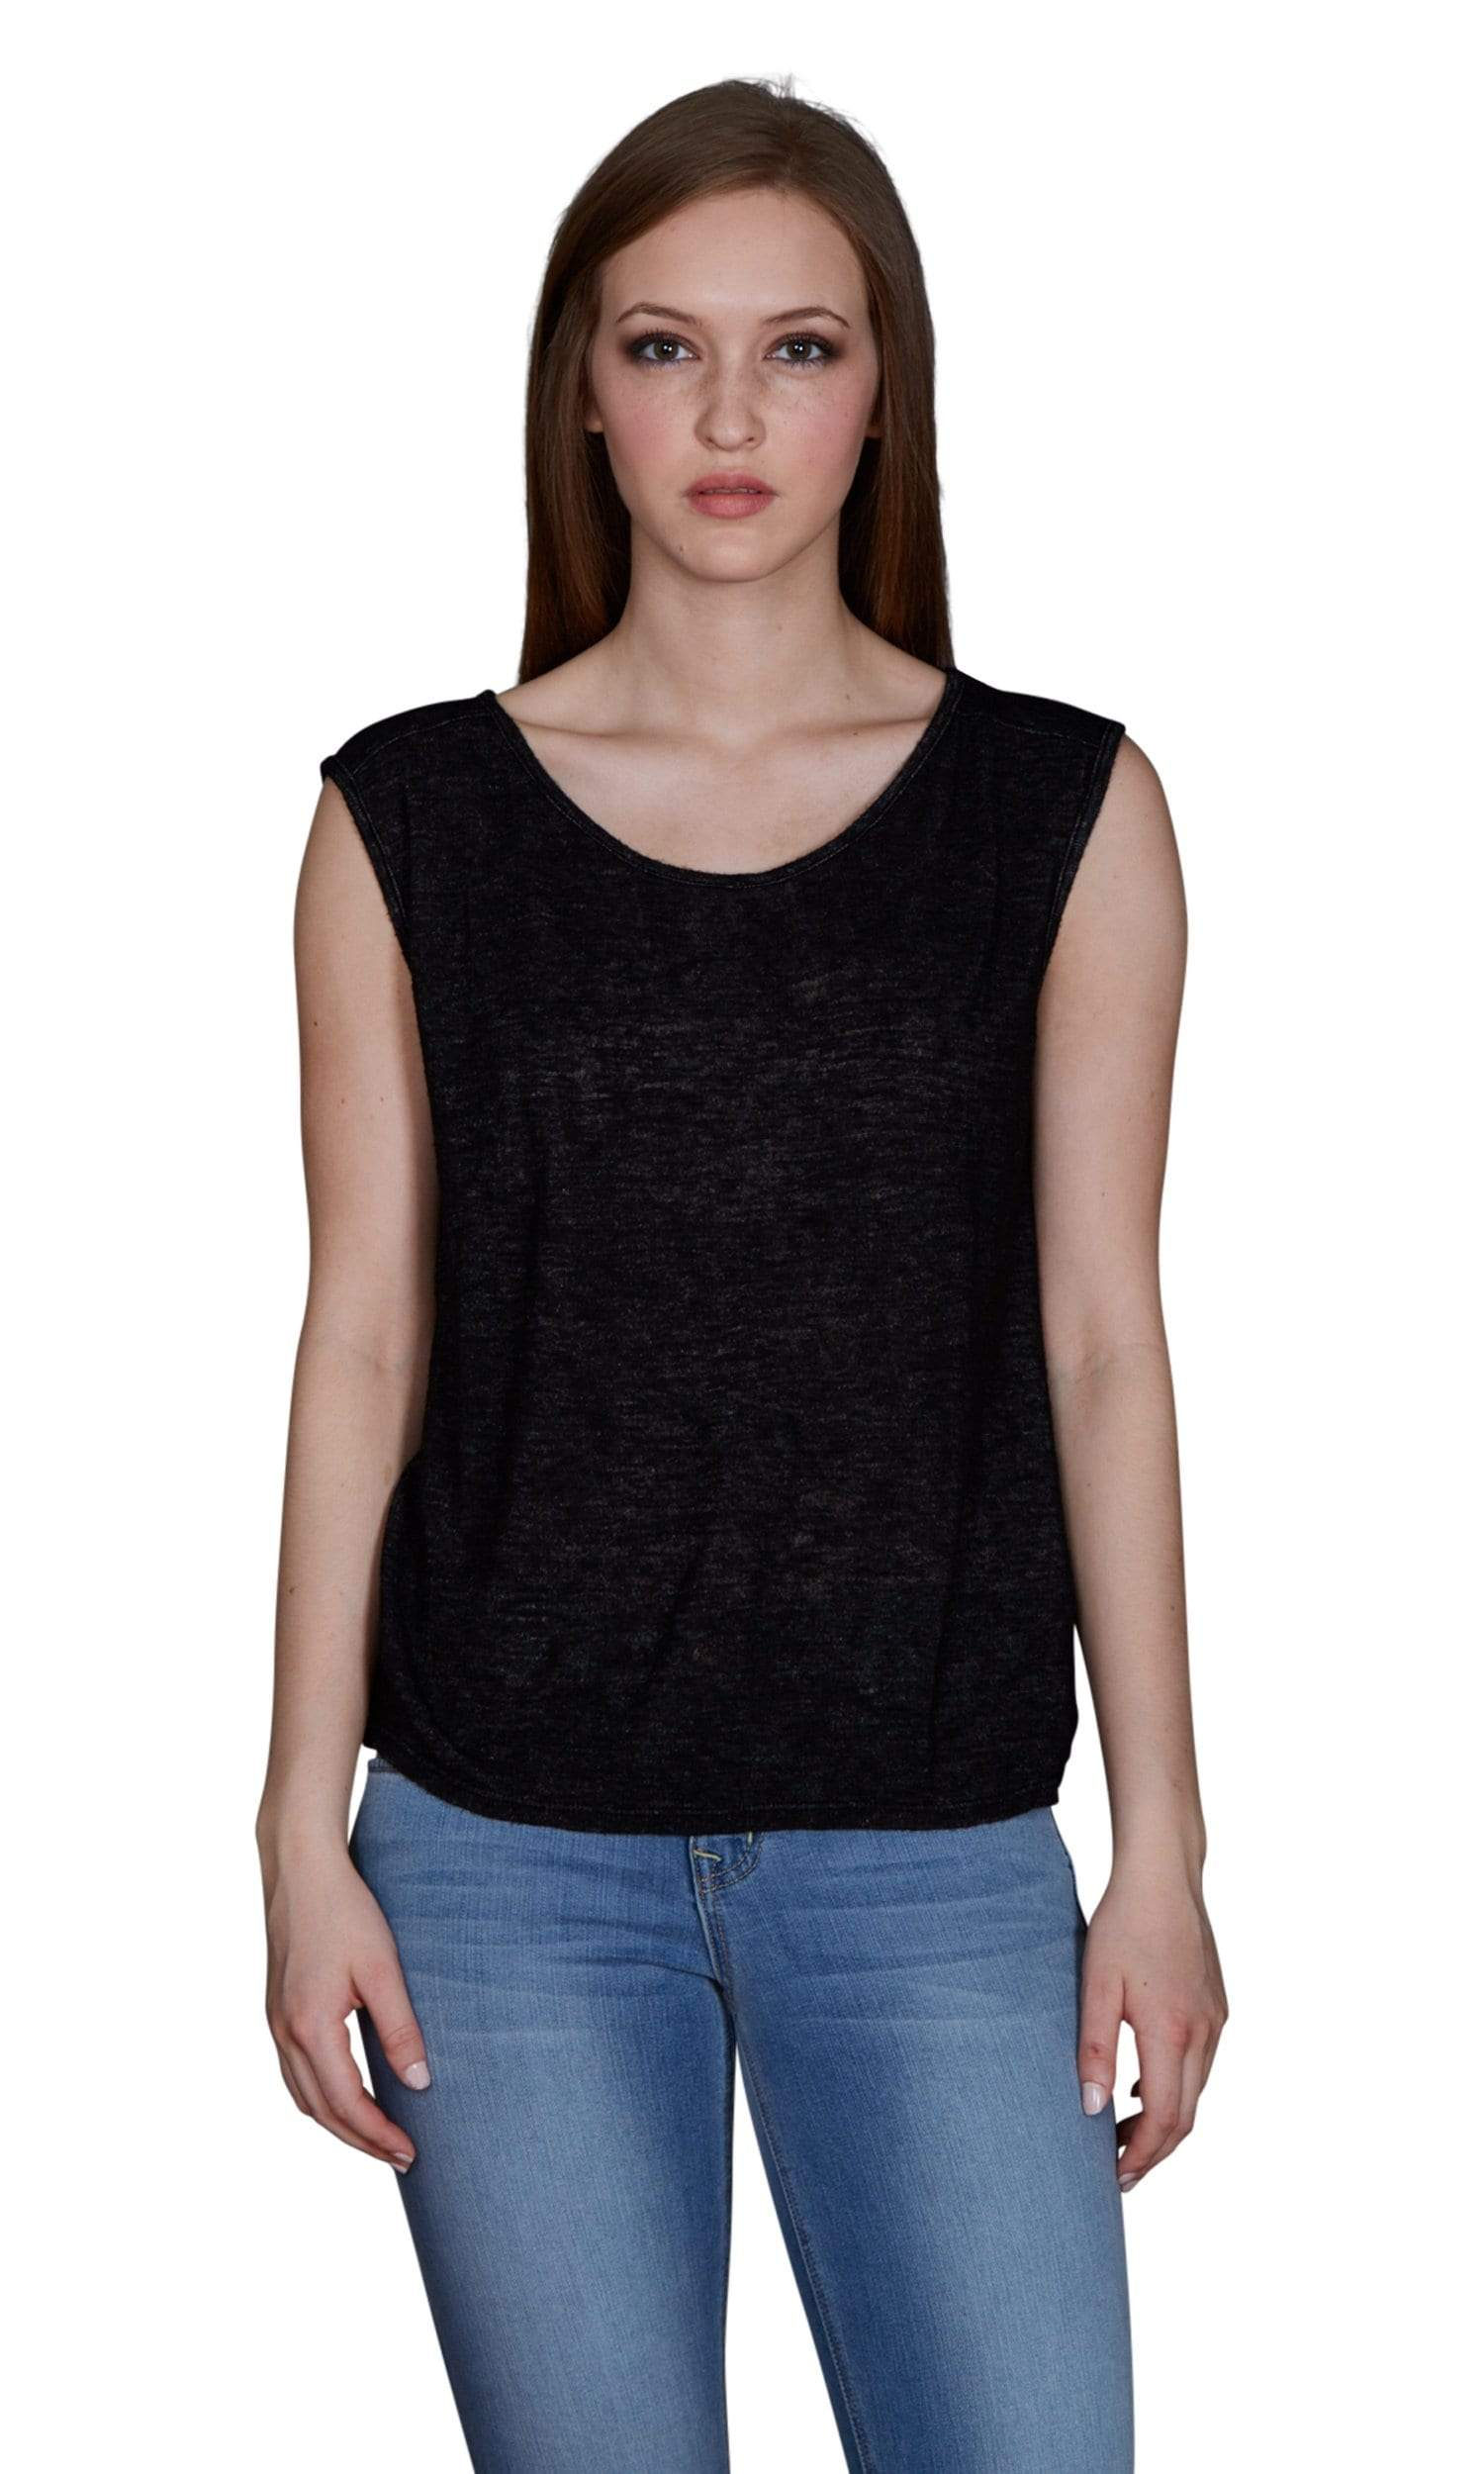 Velvet by Graham & Spencer Delia Textured Knit Round Neck Top